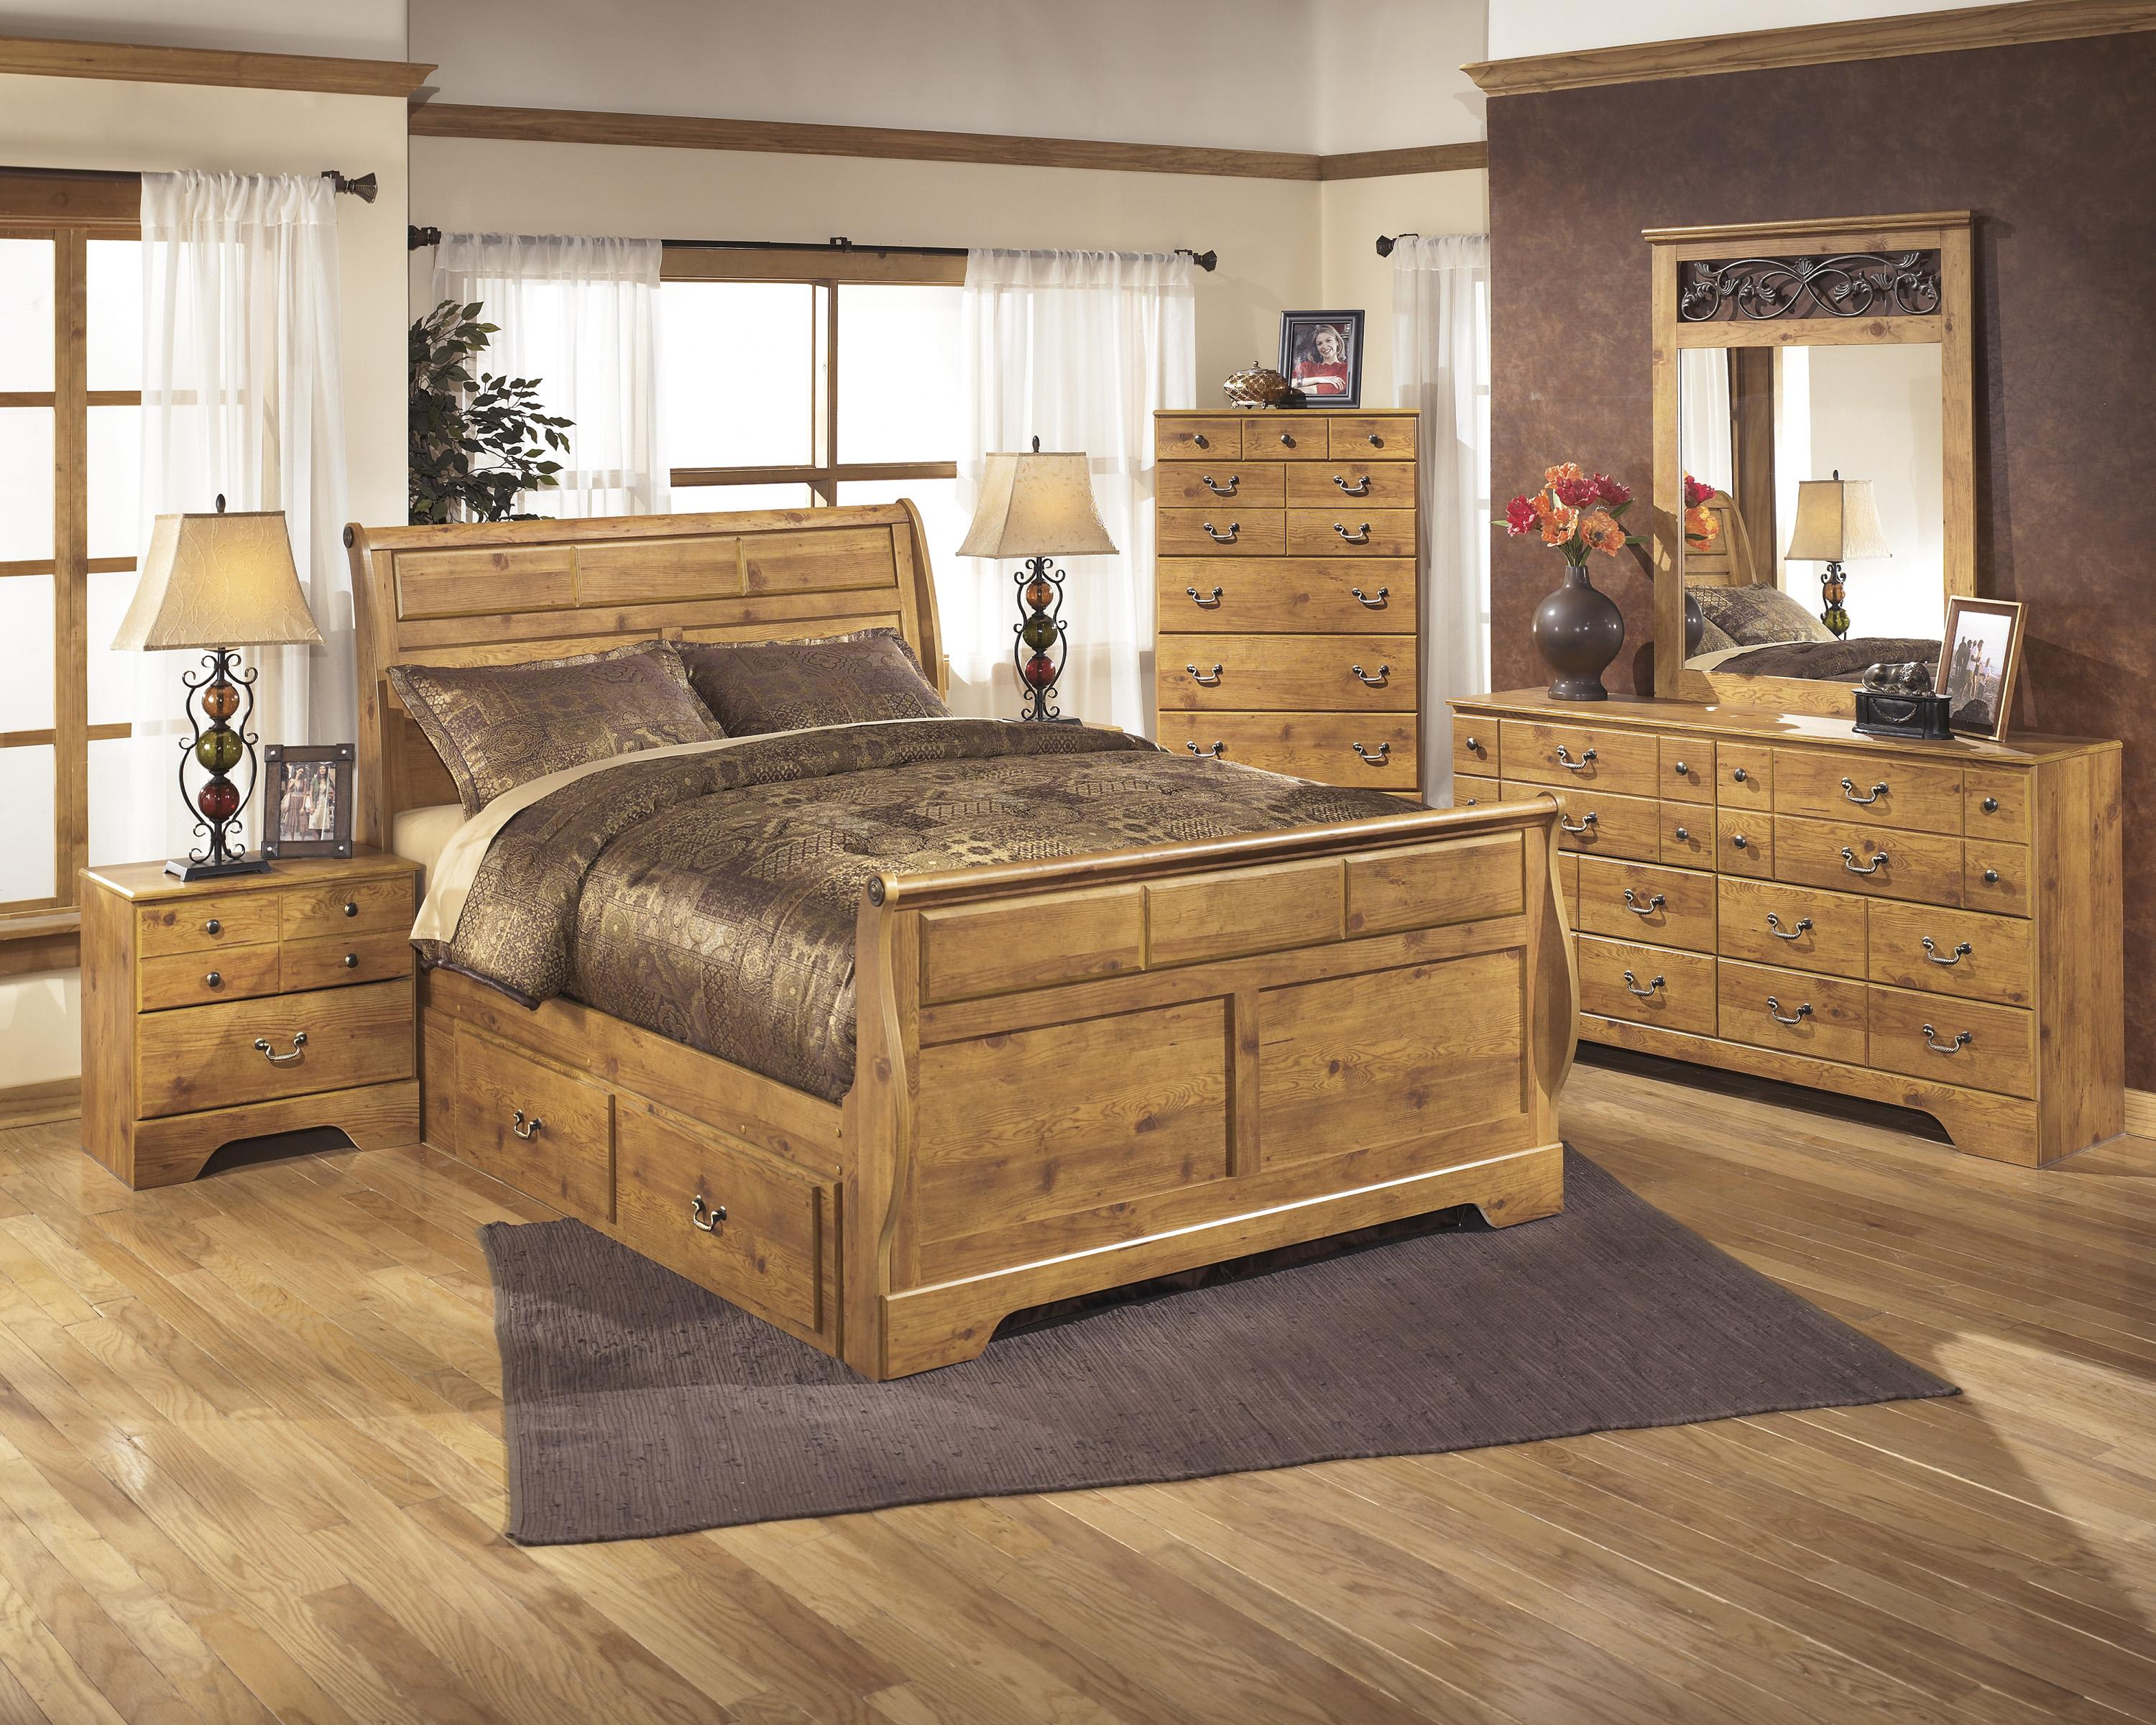 drawers white full king frame queen storage bed of underneath twin size drawer headboard and with beds